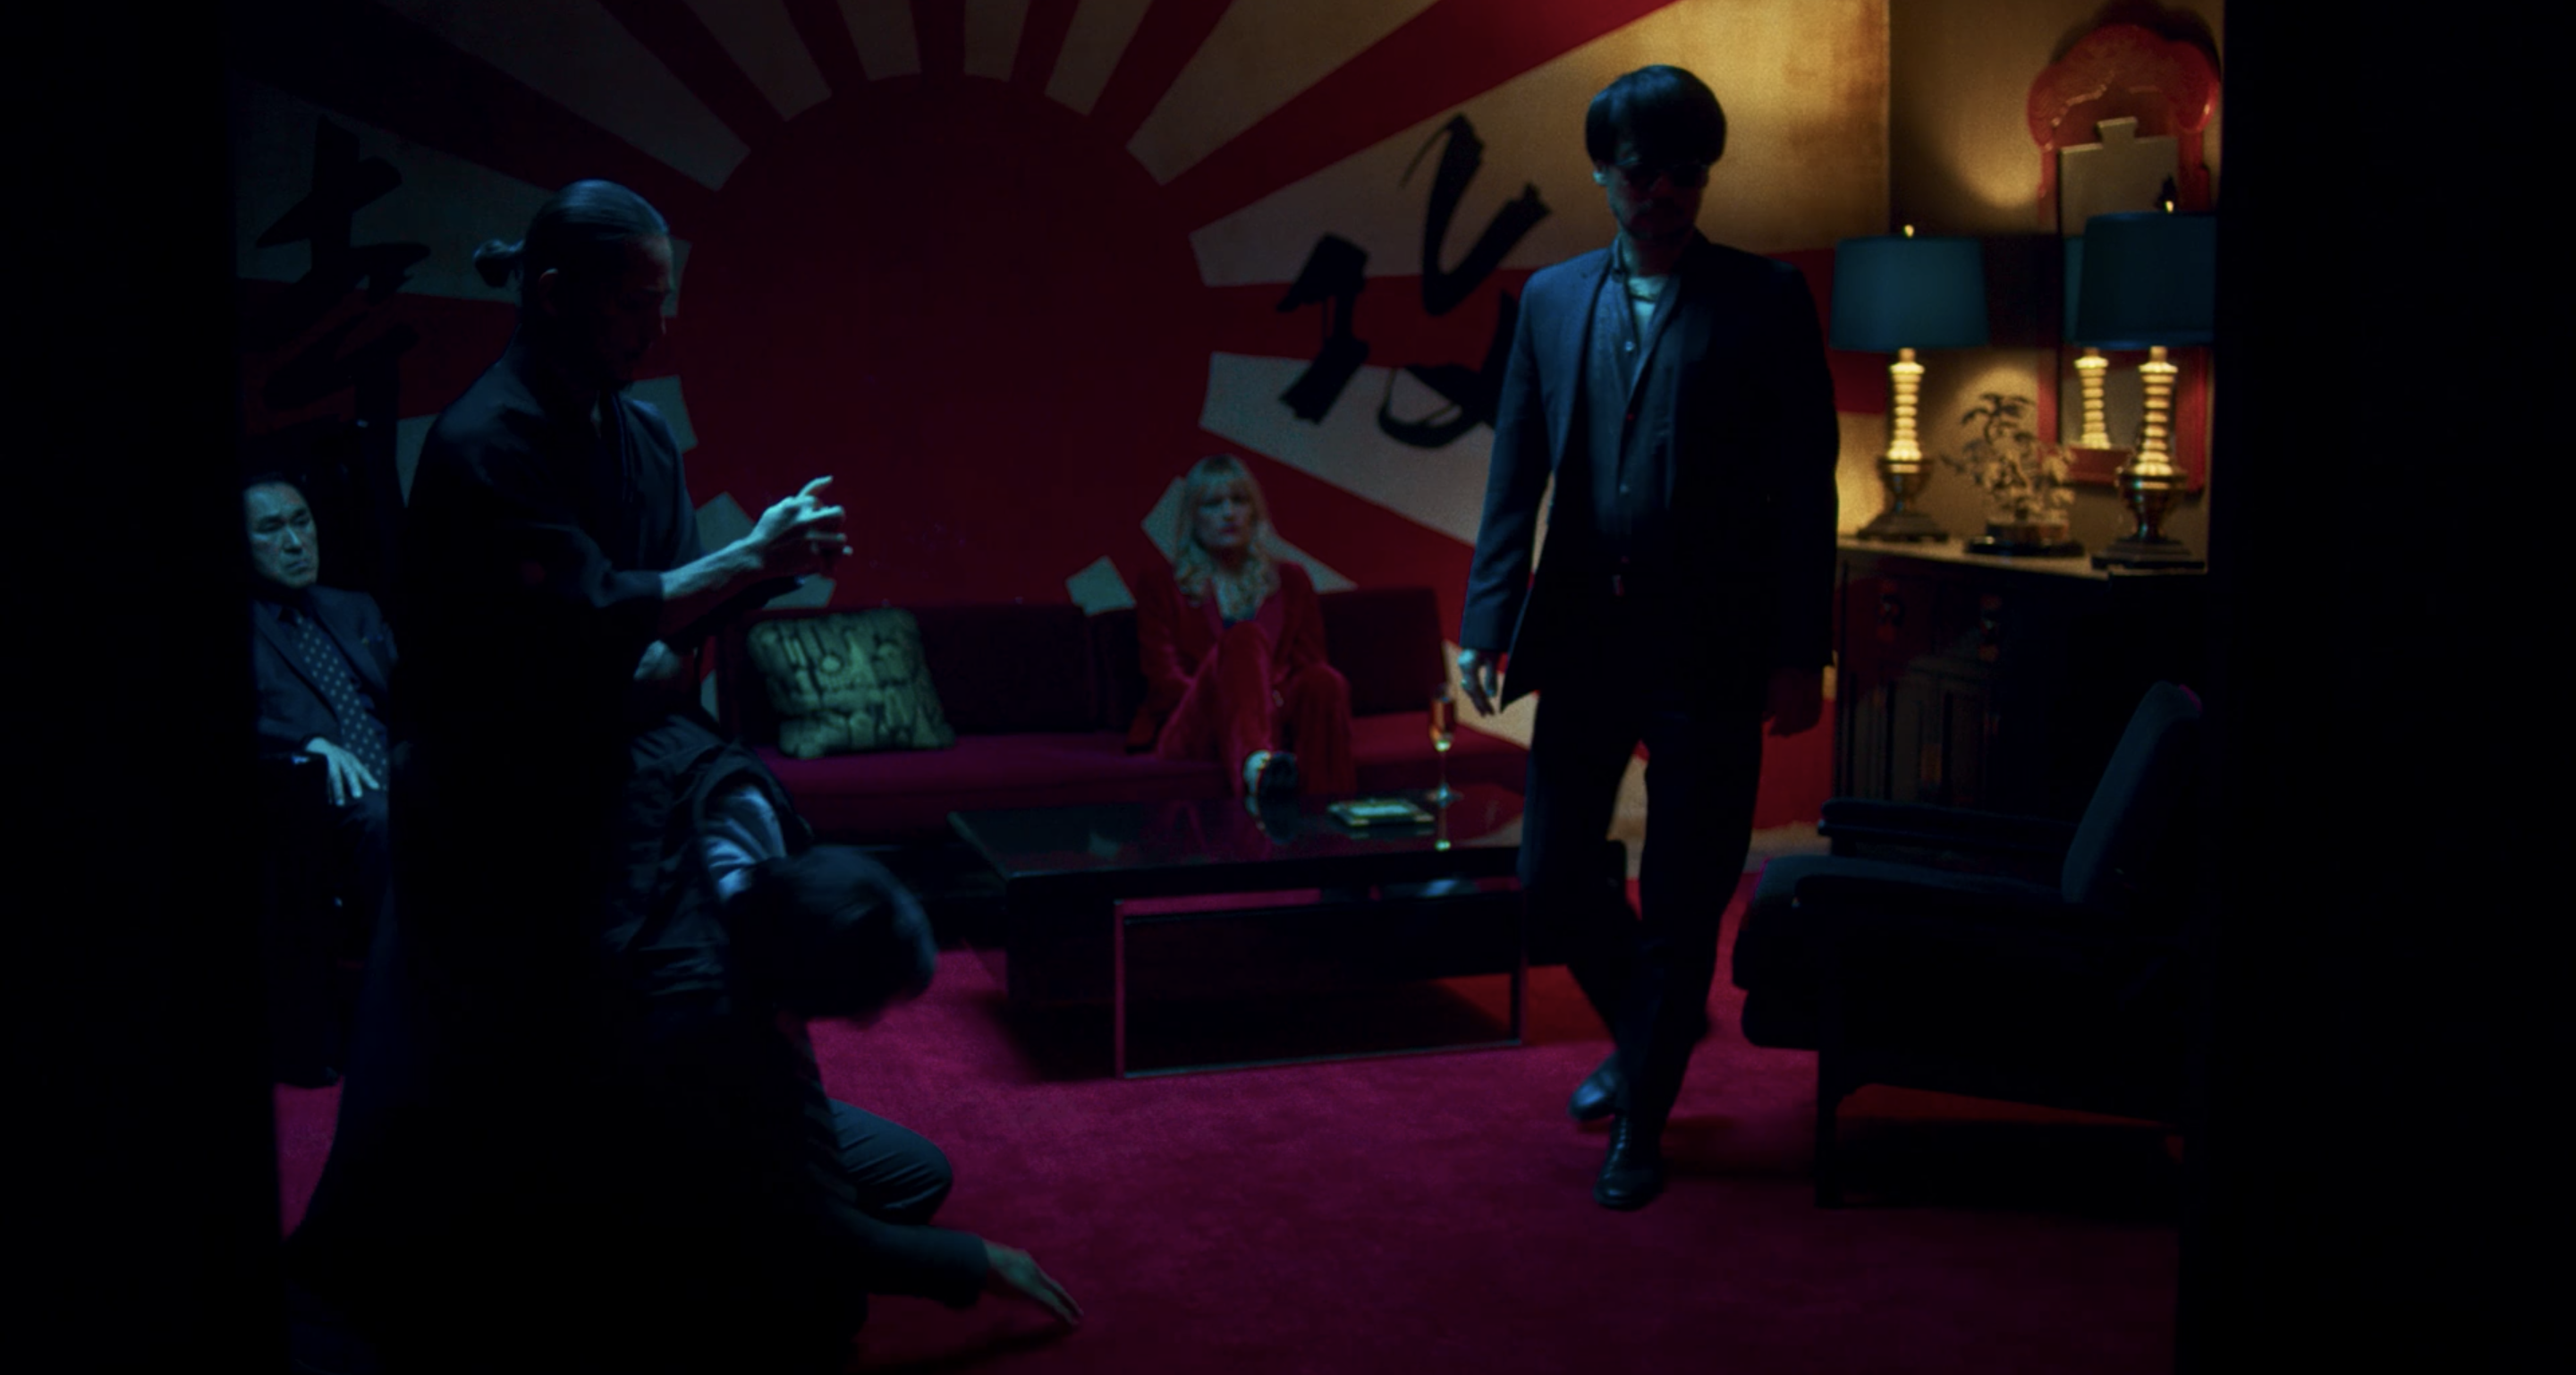 How to watch Hideo Kojima's cameo in Too Old to Die Young